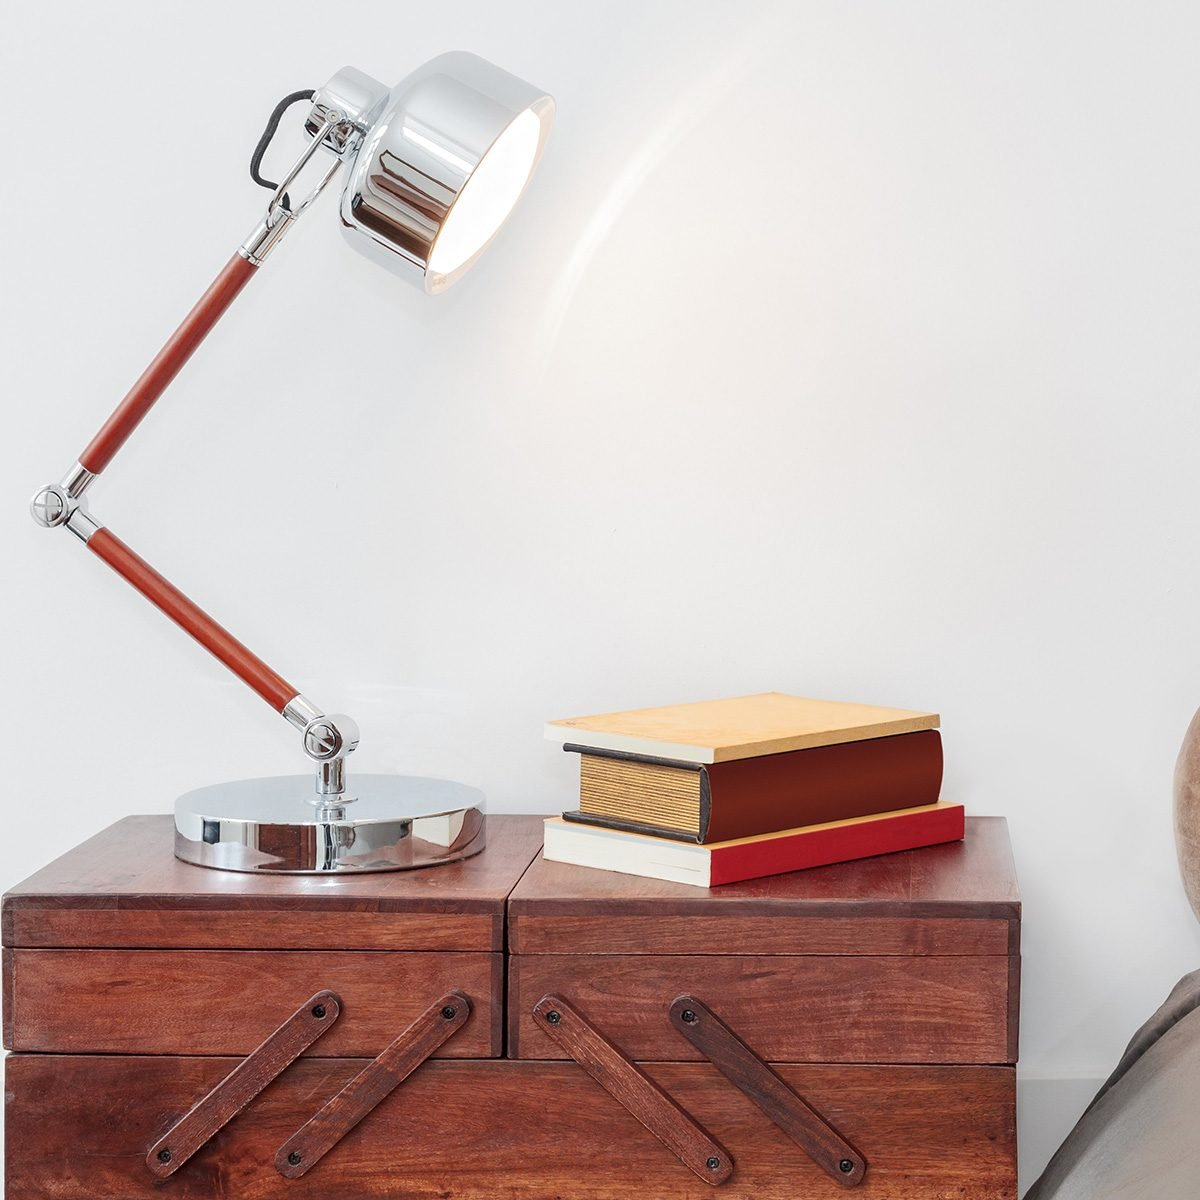 Light and books on a nightstand